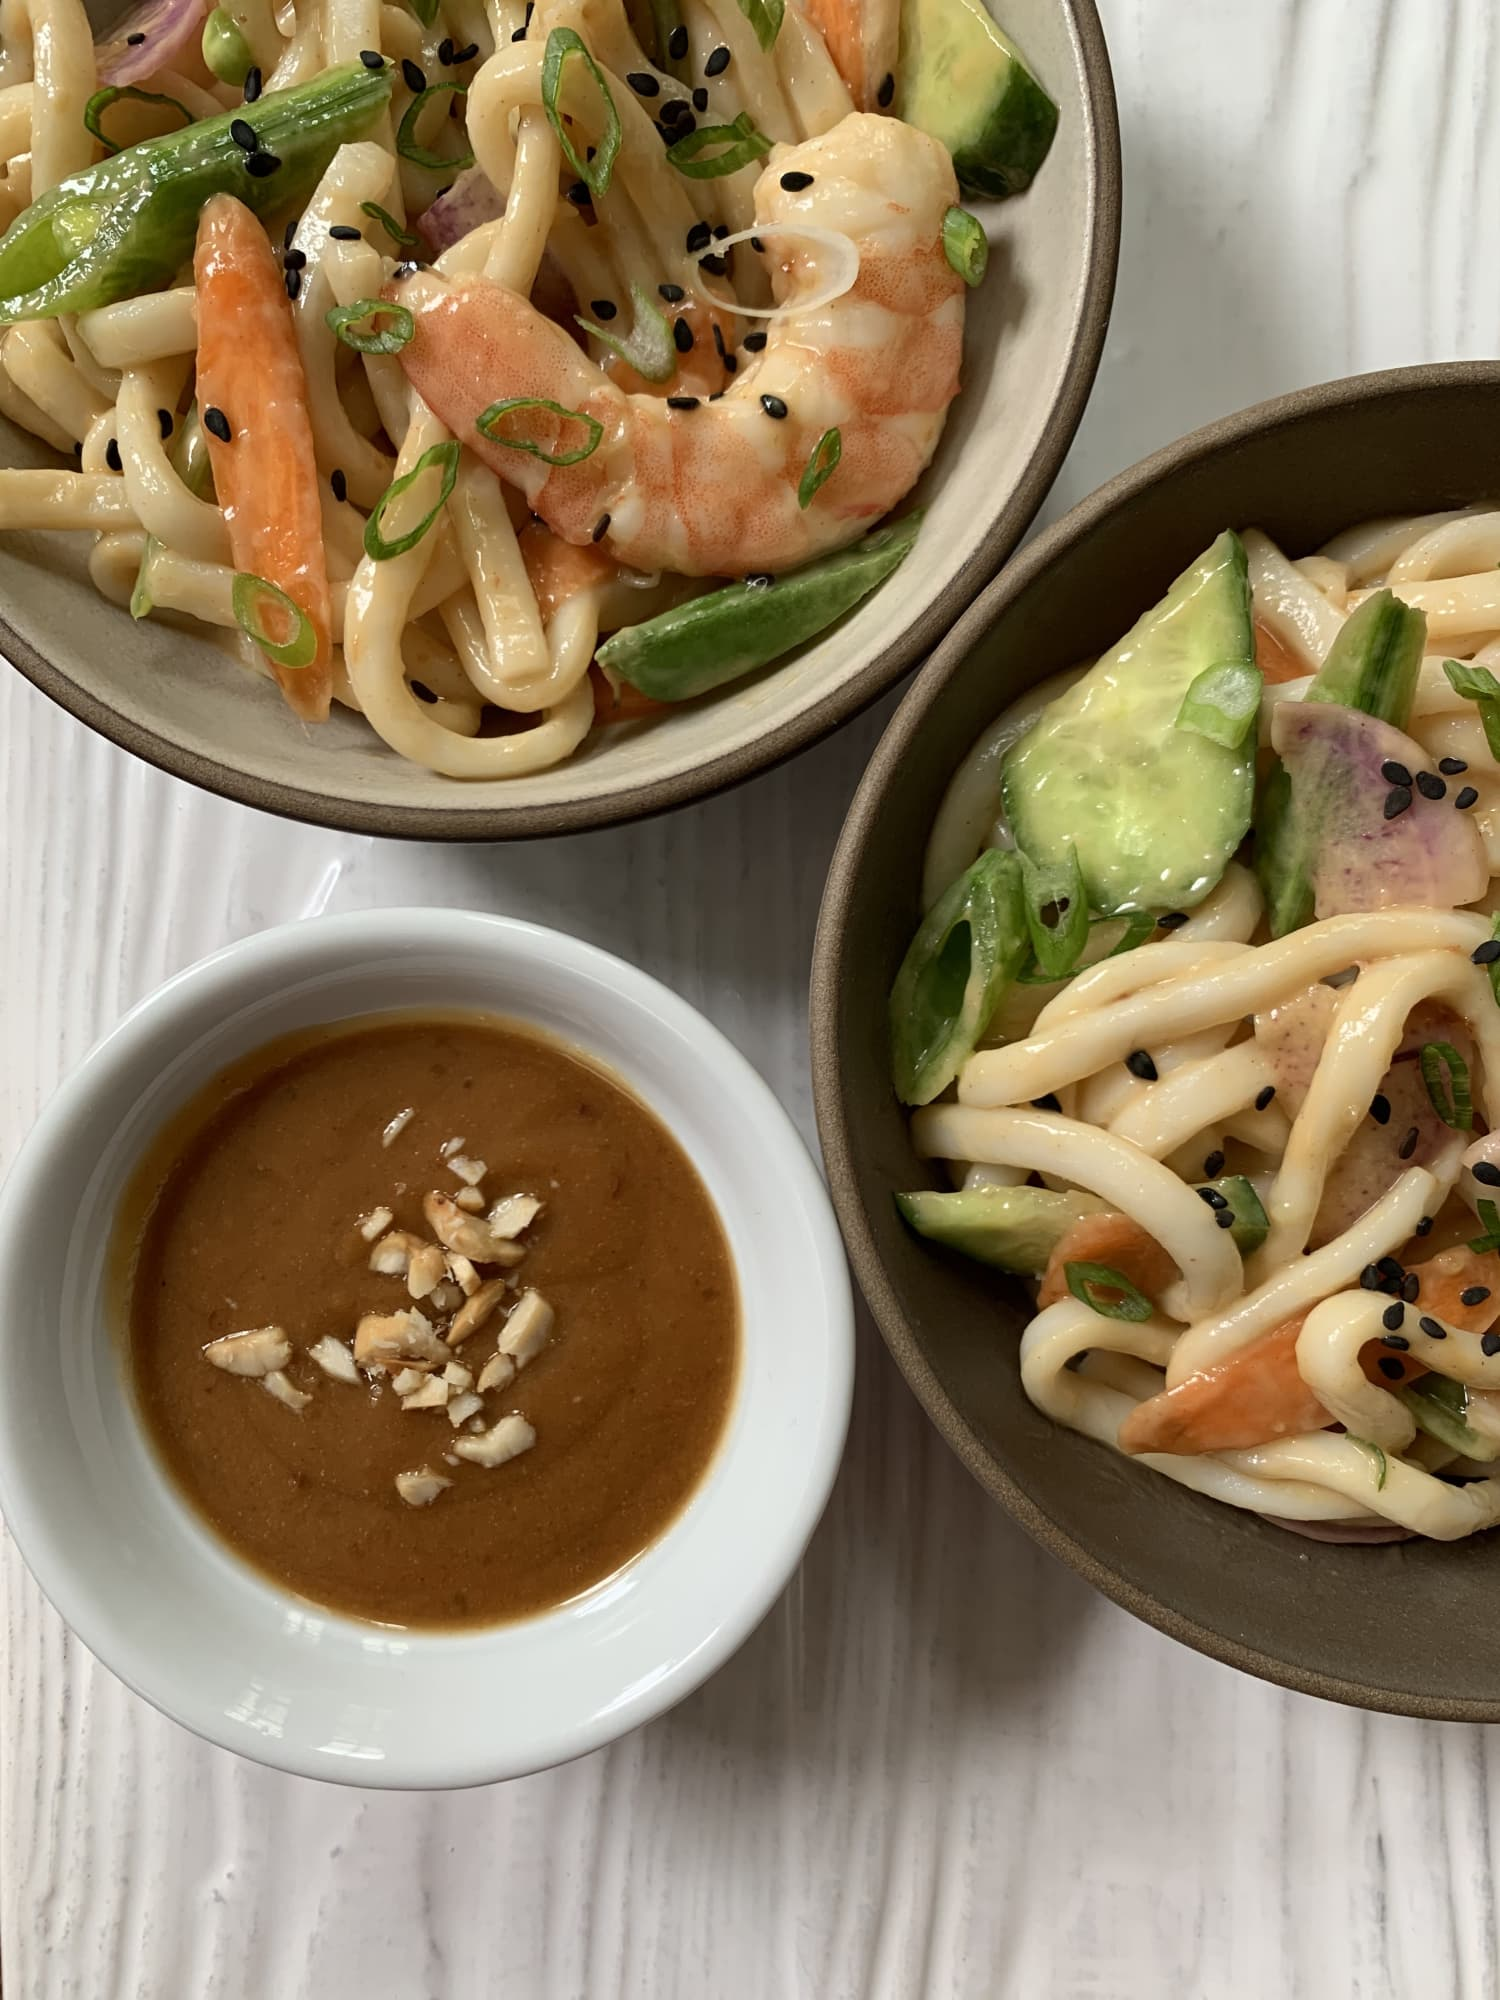 The No-Cook, All-Purpose Peanut Sauce That Has a Permanent Place in My Fridge